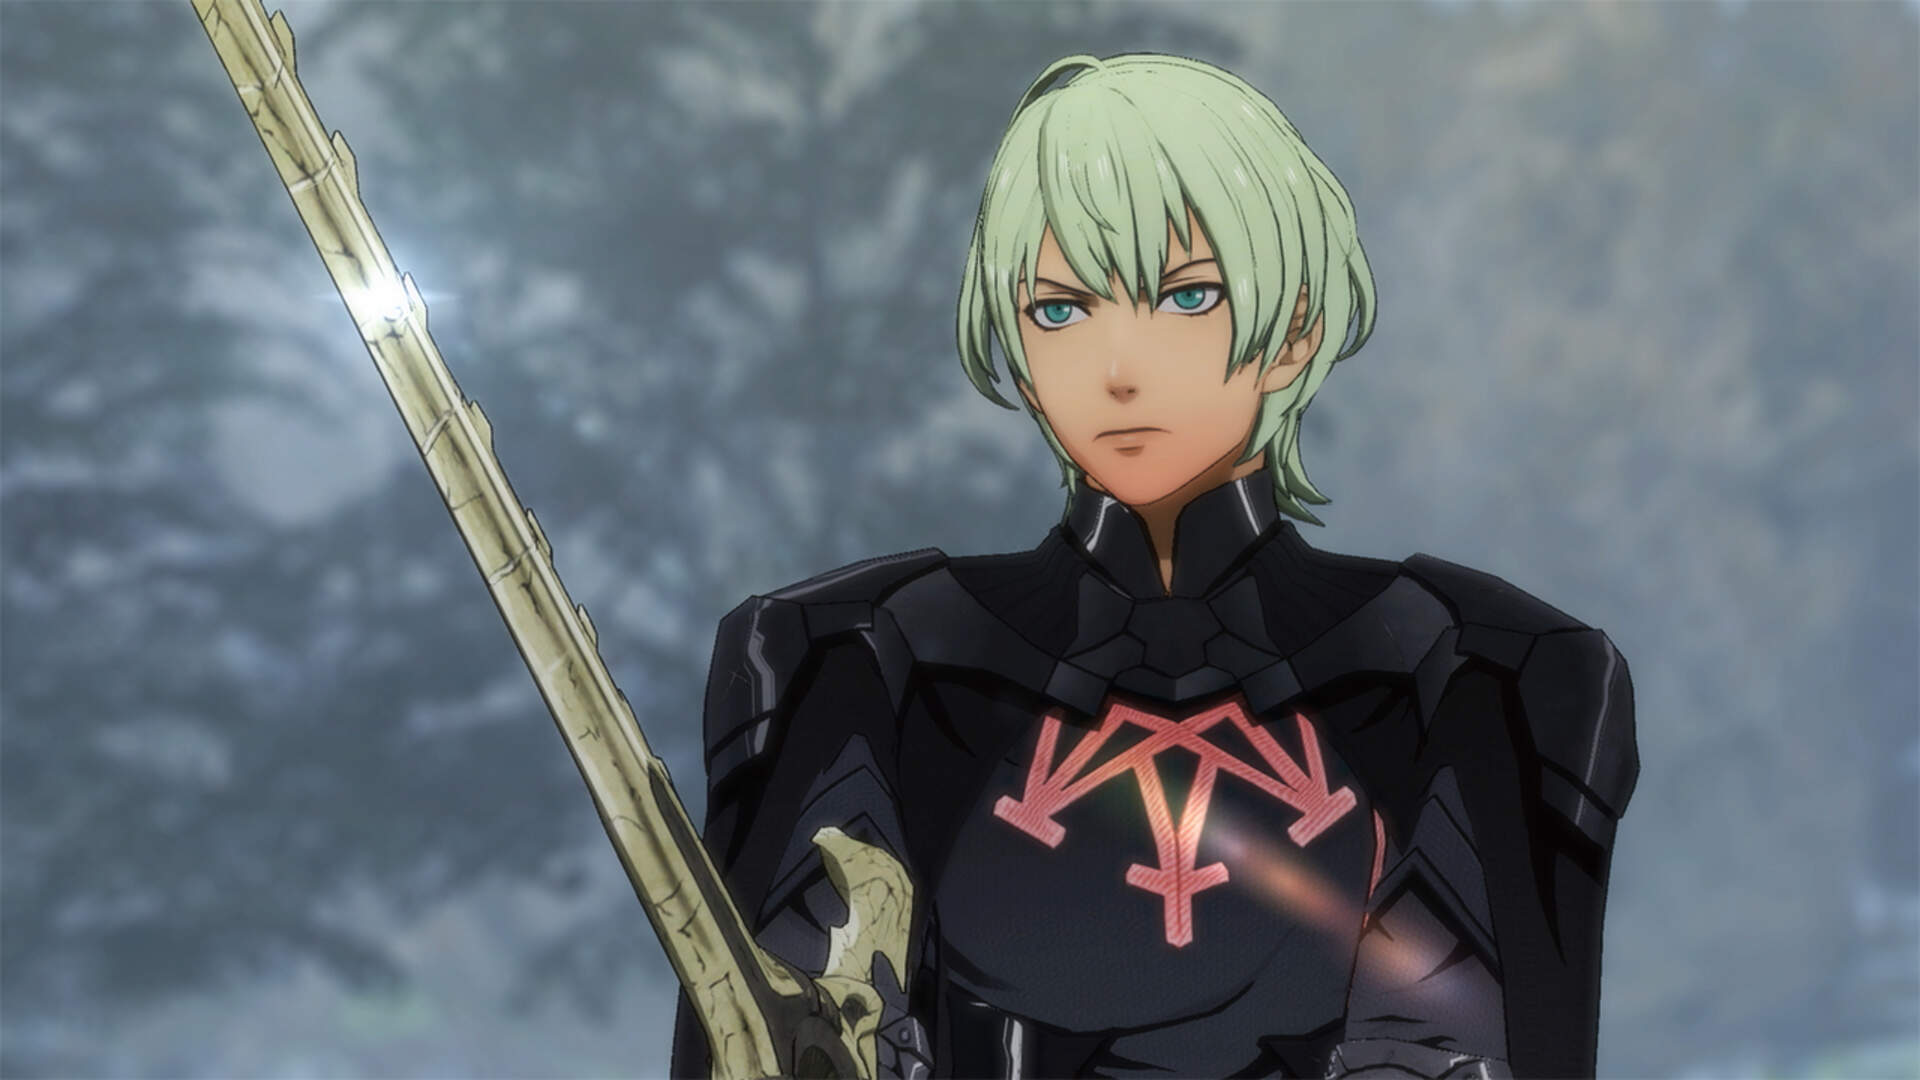 Controversial Fire Emblem: Three Houses Voice Actor Quietly Replaced in the Mobile Game [Update]